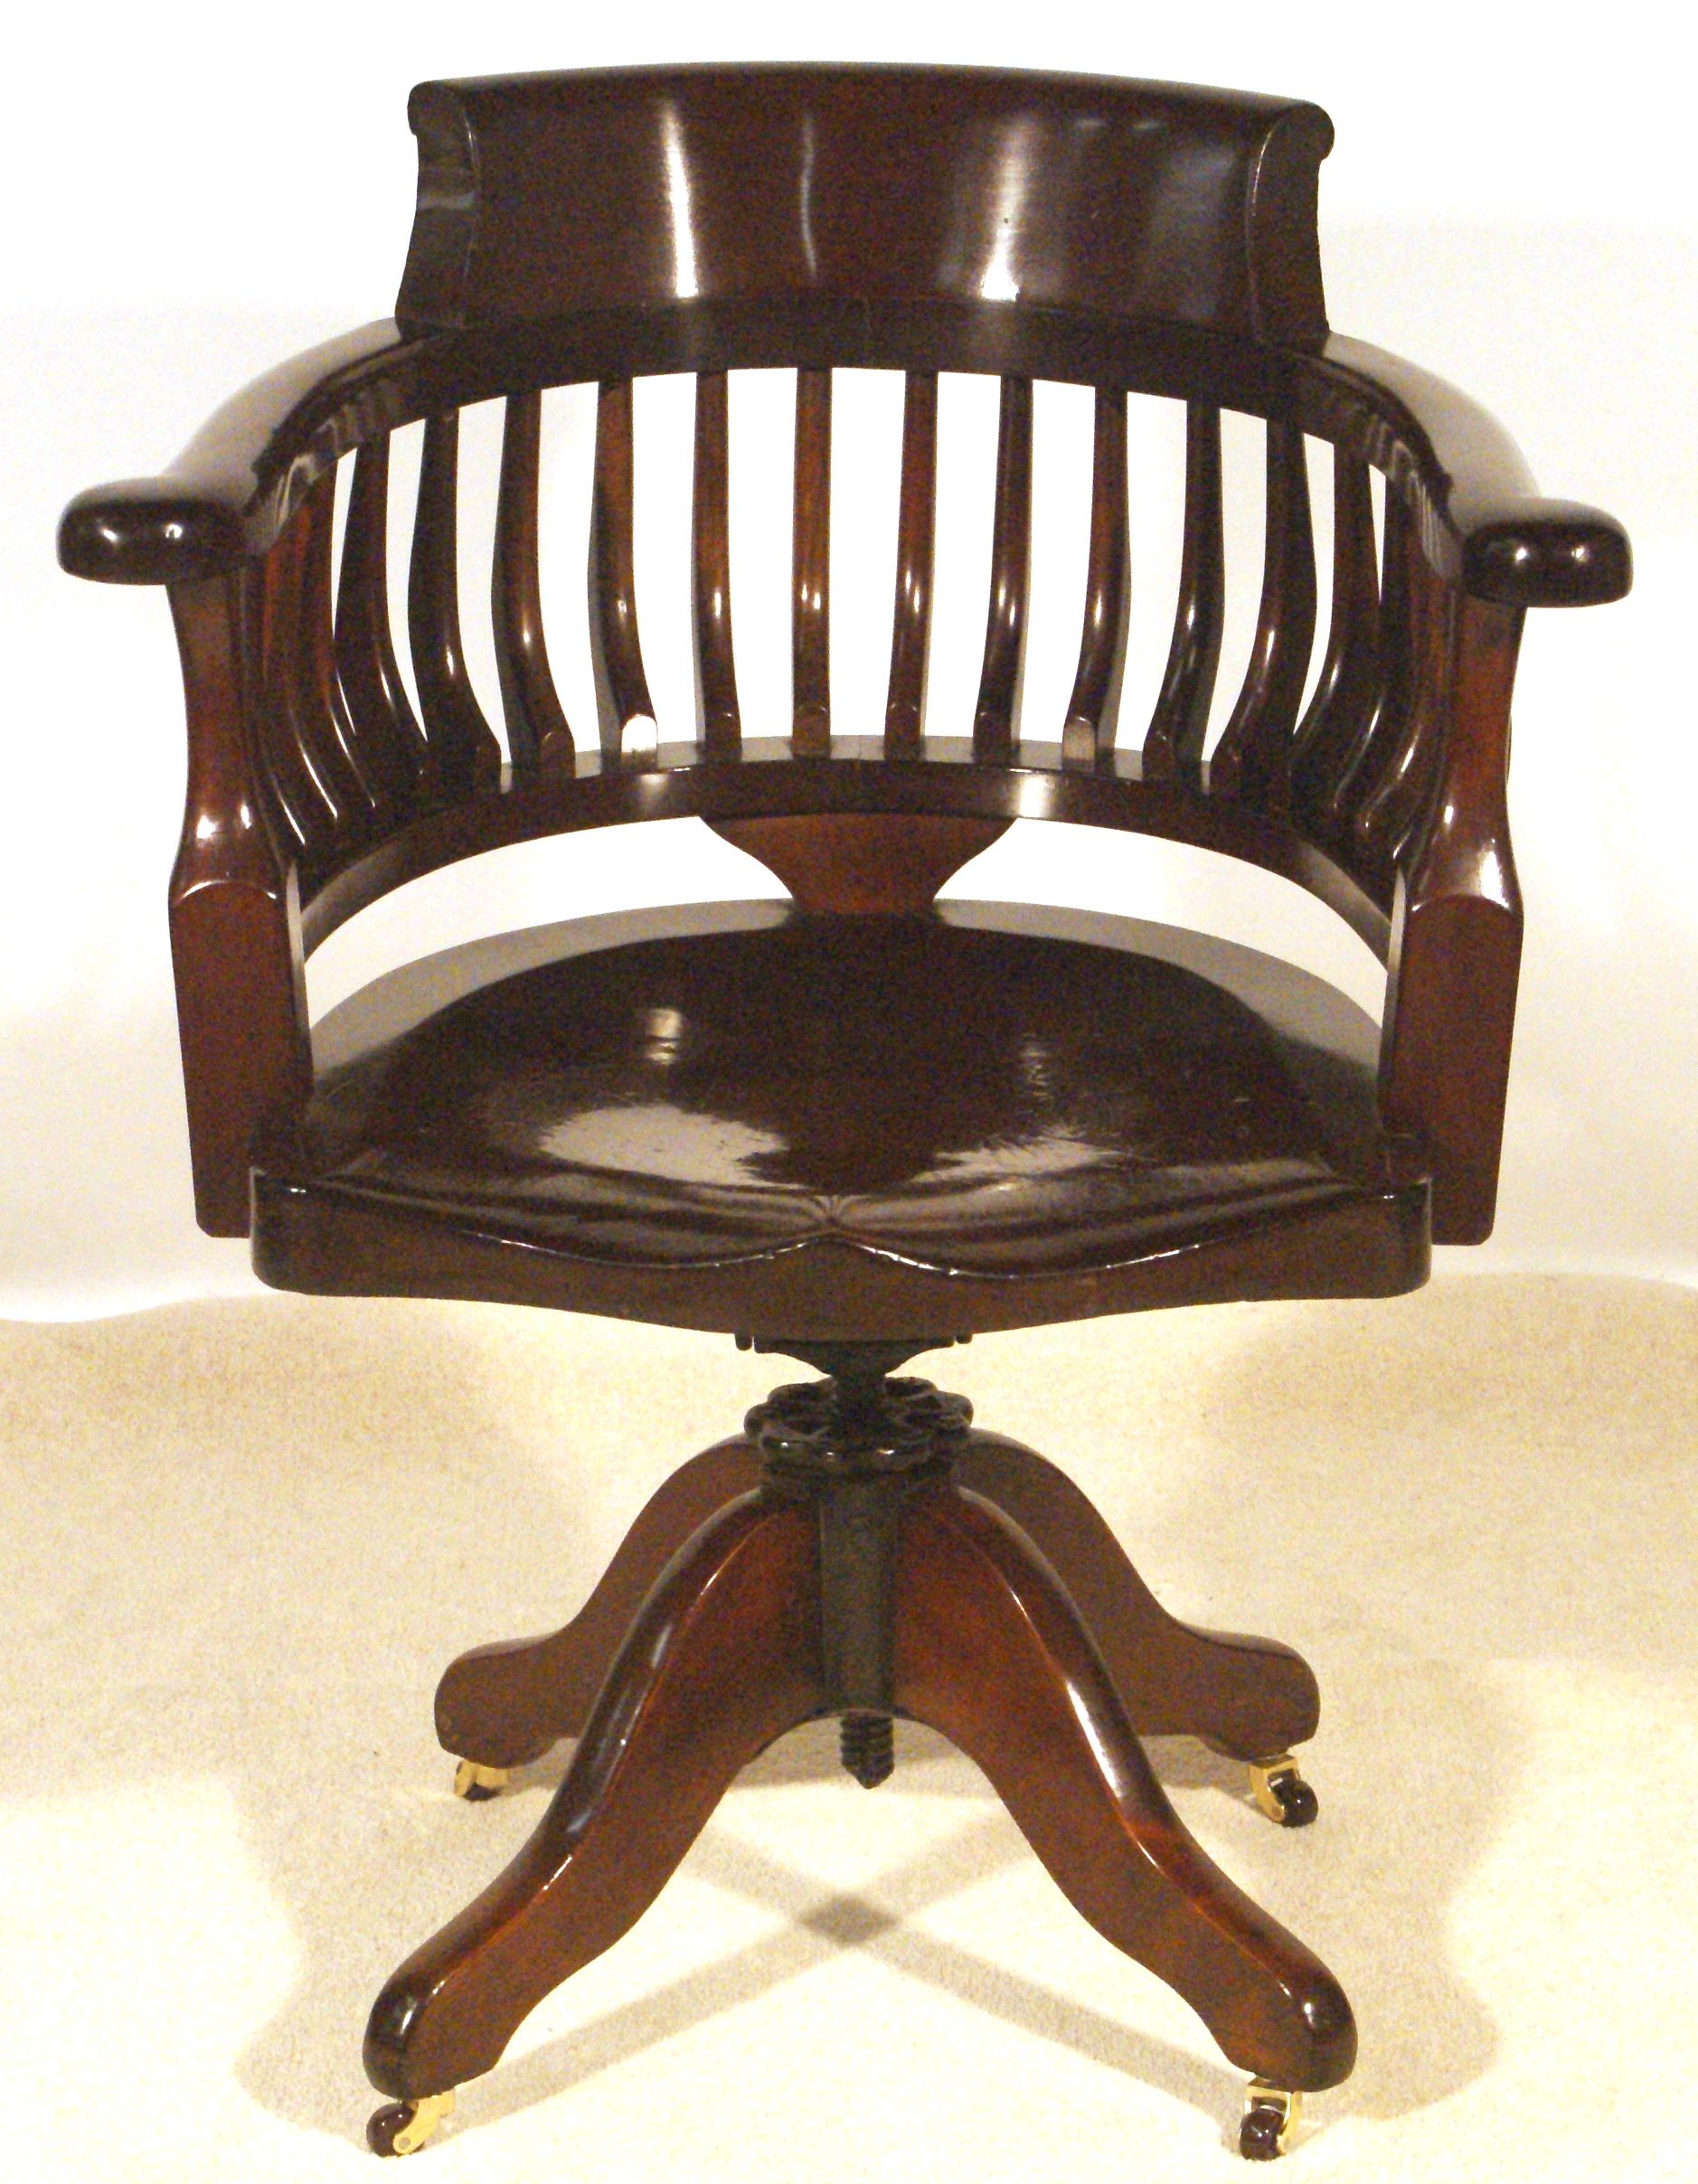 Victorian Swivel And Tilt Desk Chair Sold By Www Antiquedesks Net Classic Office Furniture Chair Antique Desk Chair